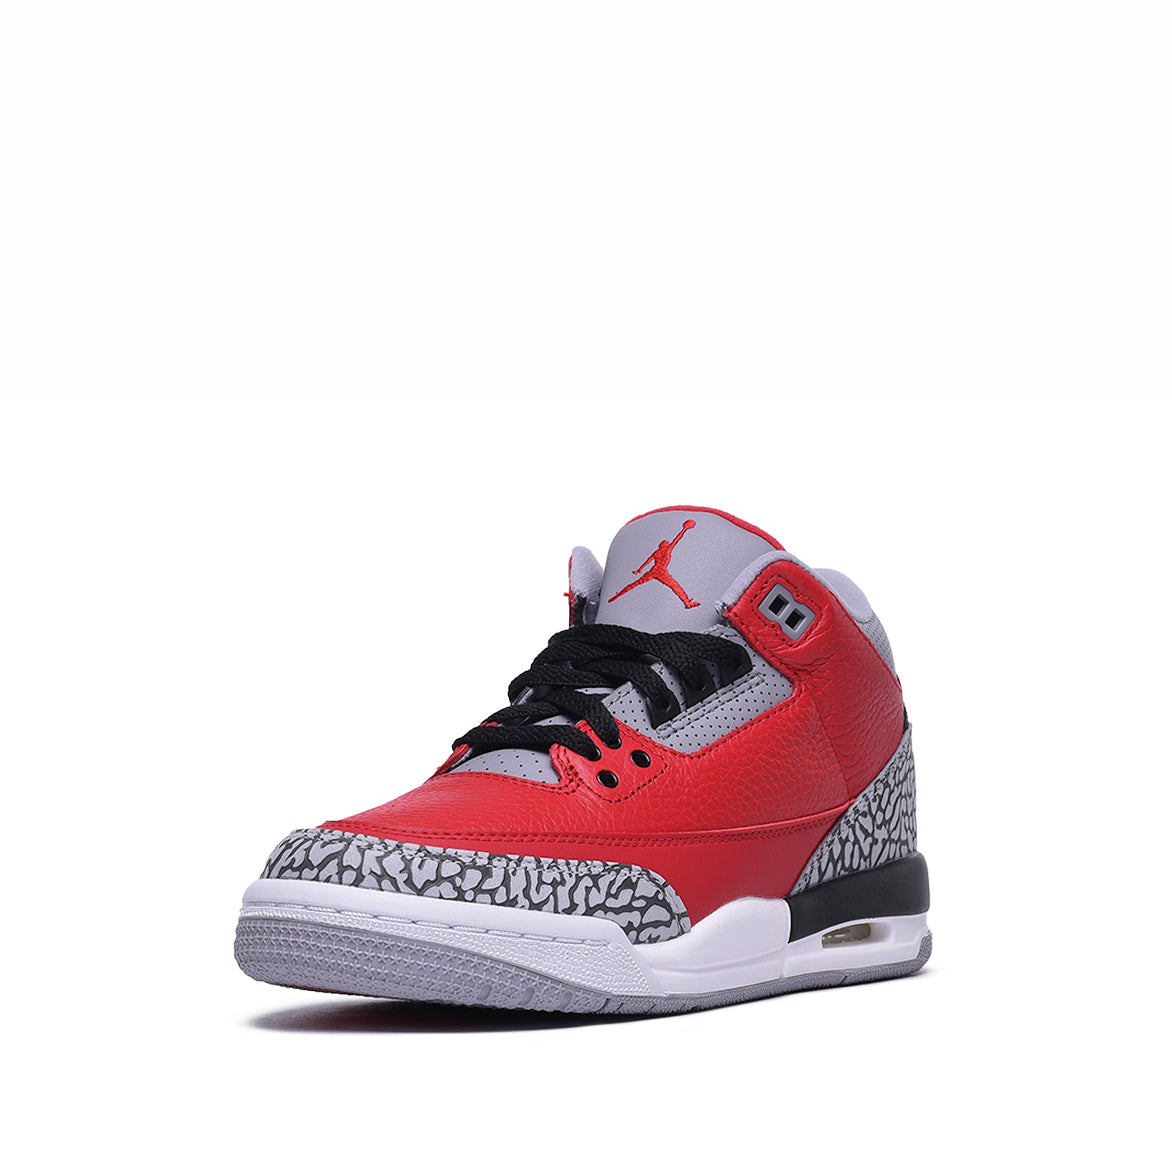 "AIR JORDAN 3 RETRO SE (GS) ""UNITE"""